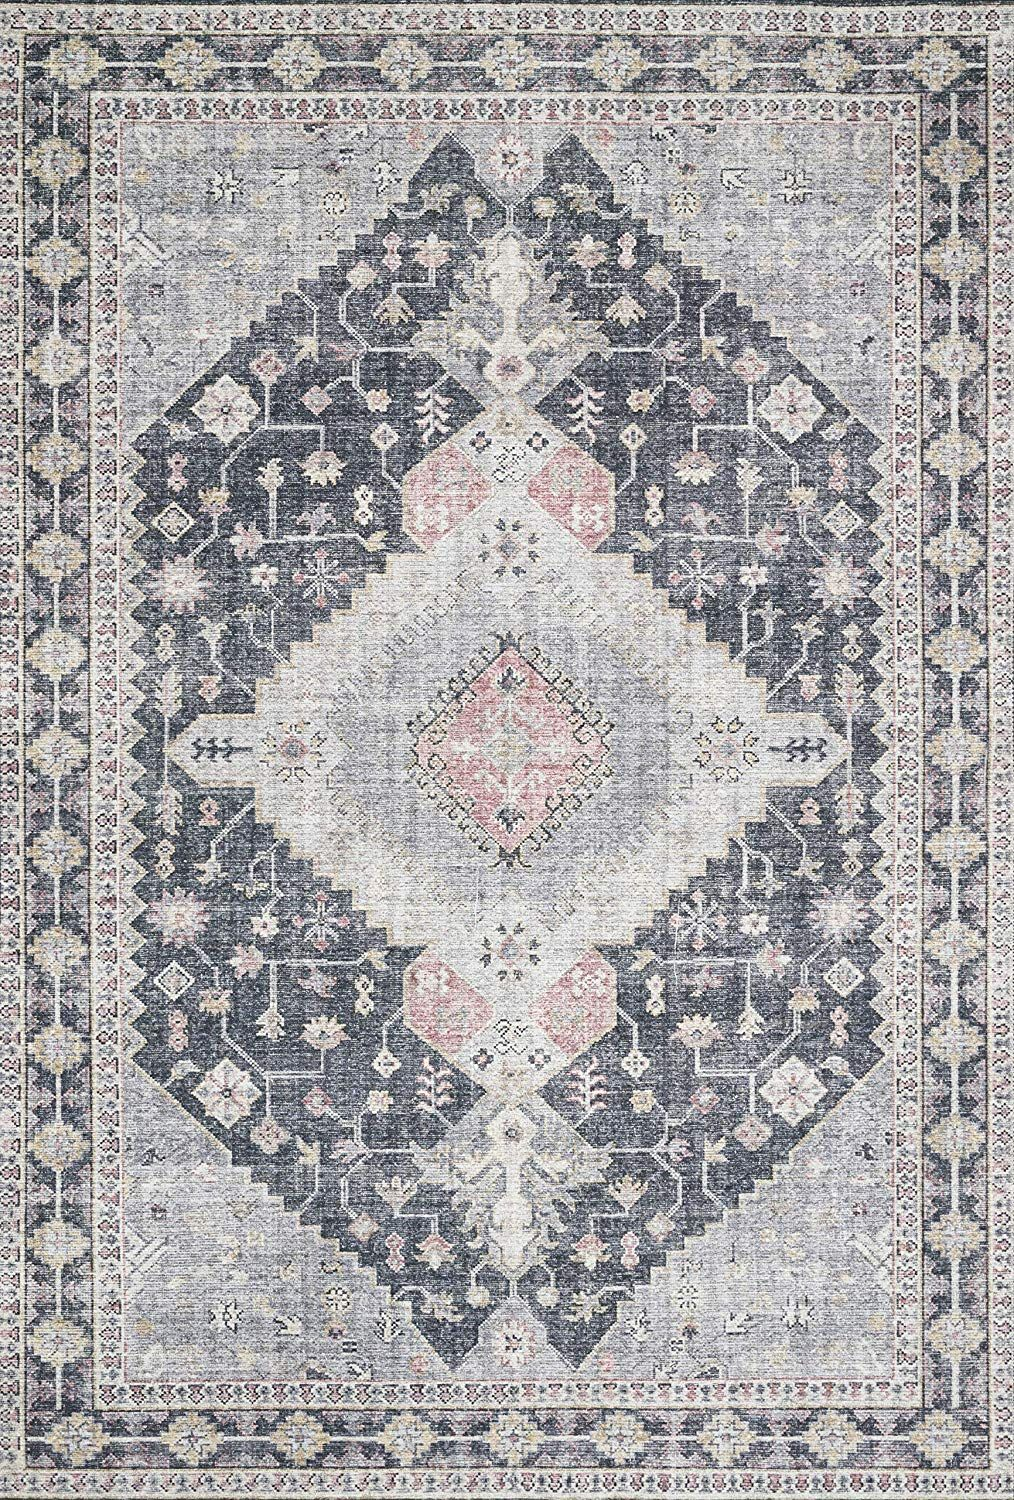 Amazon Com Loloi Ii Skyesky 02sigy2339 Skye Area Rug 2 3 X 3 9 Blush Grey Kitchen Dining Vintage Area Rugs Colorful Rugs Area Rugs